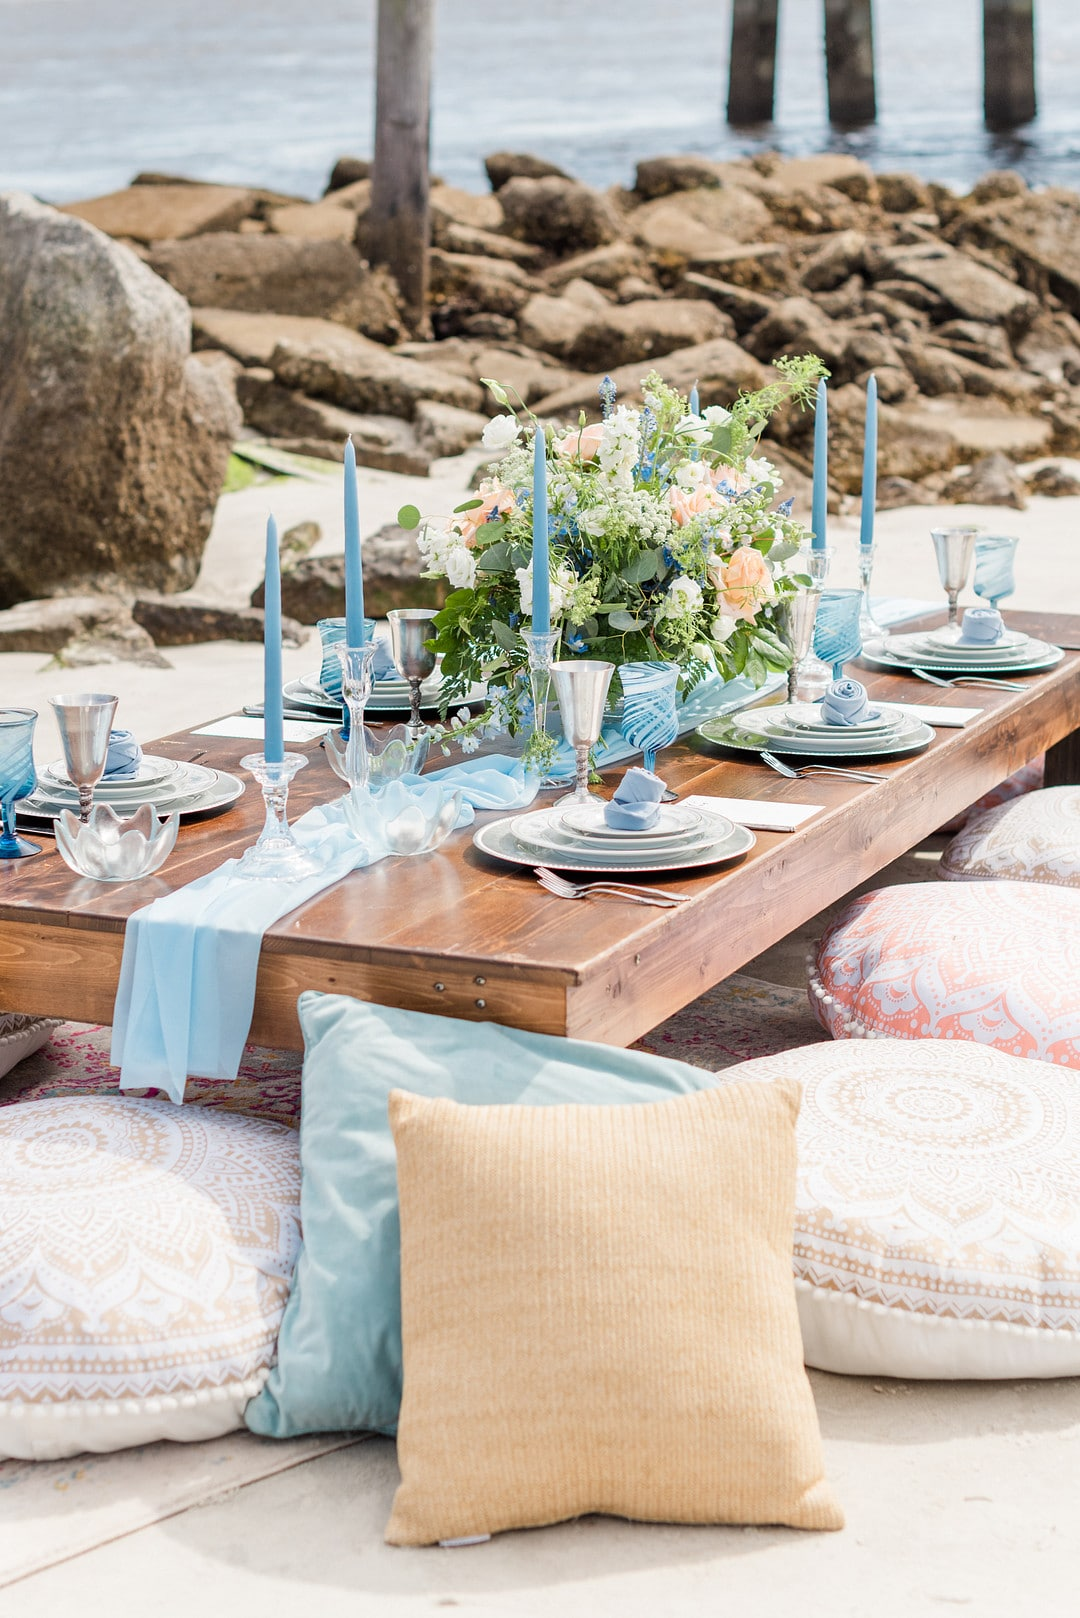 the table set up with pillows surrounding for the amelia island beach wedding inspiration shoot